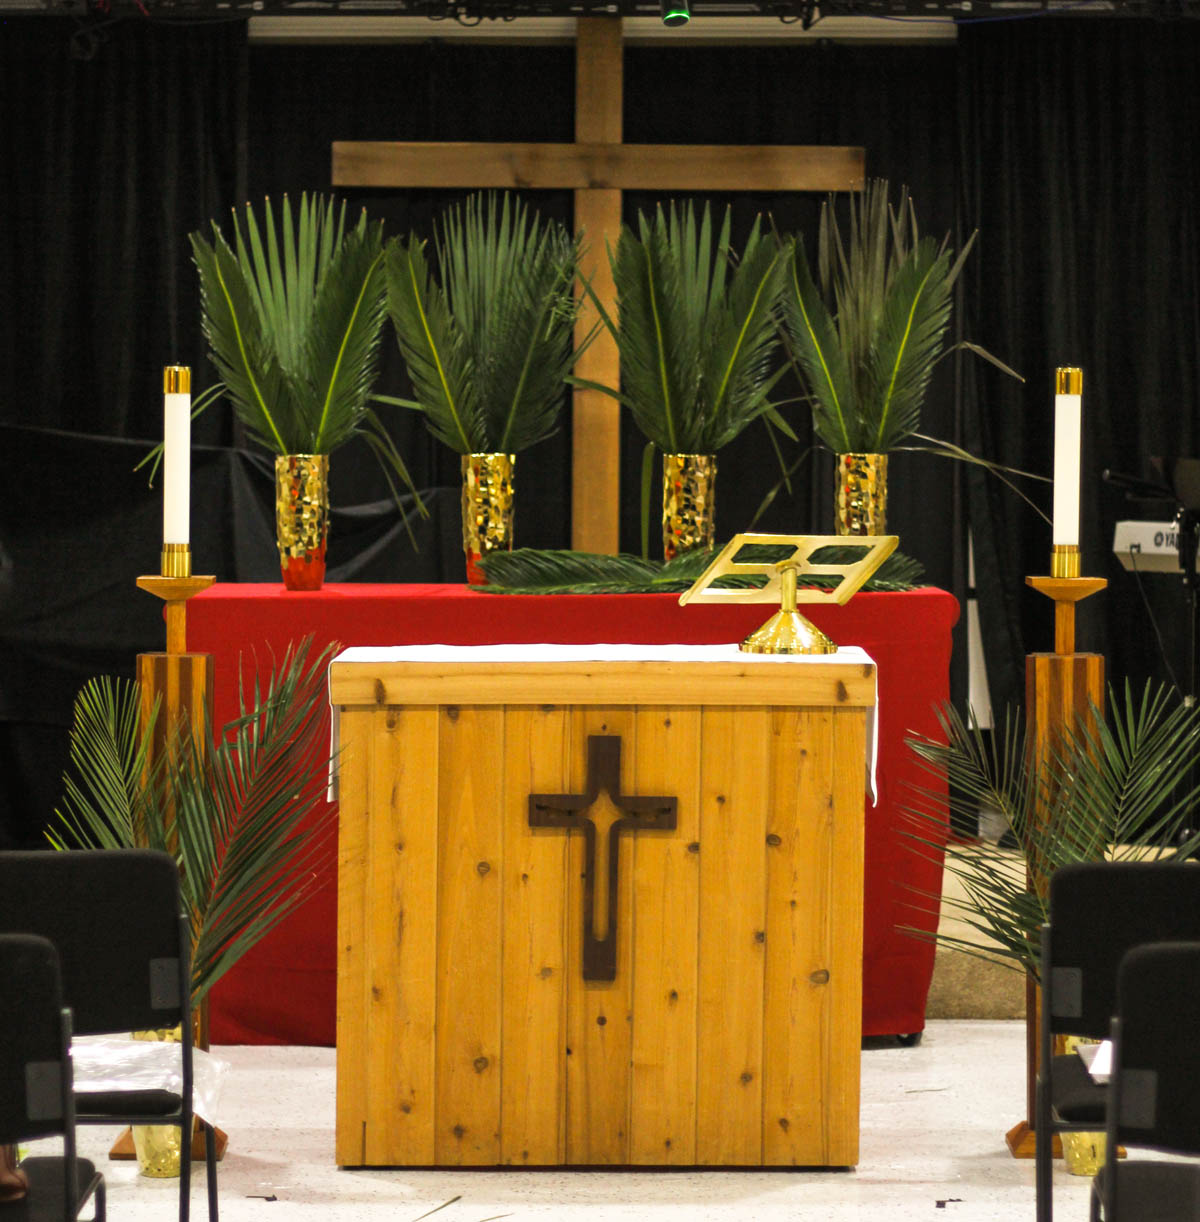 2019-04-14-WCEC-Palm-Sunday-002